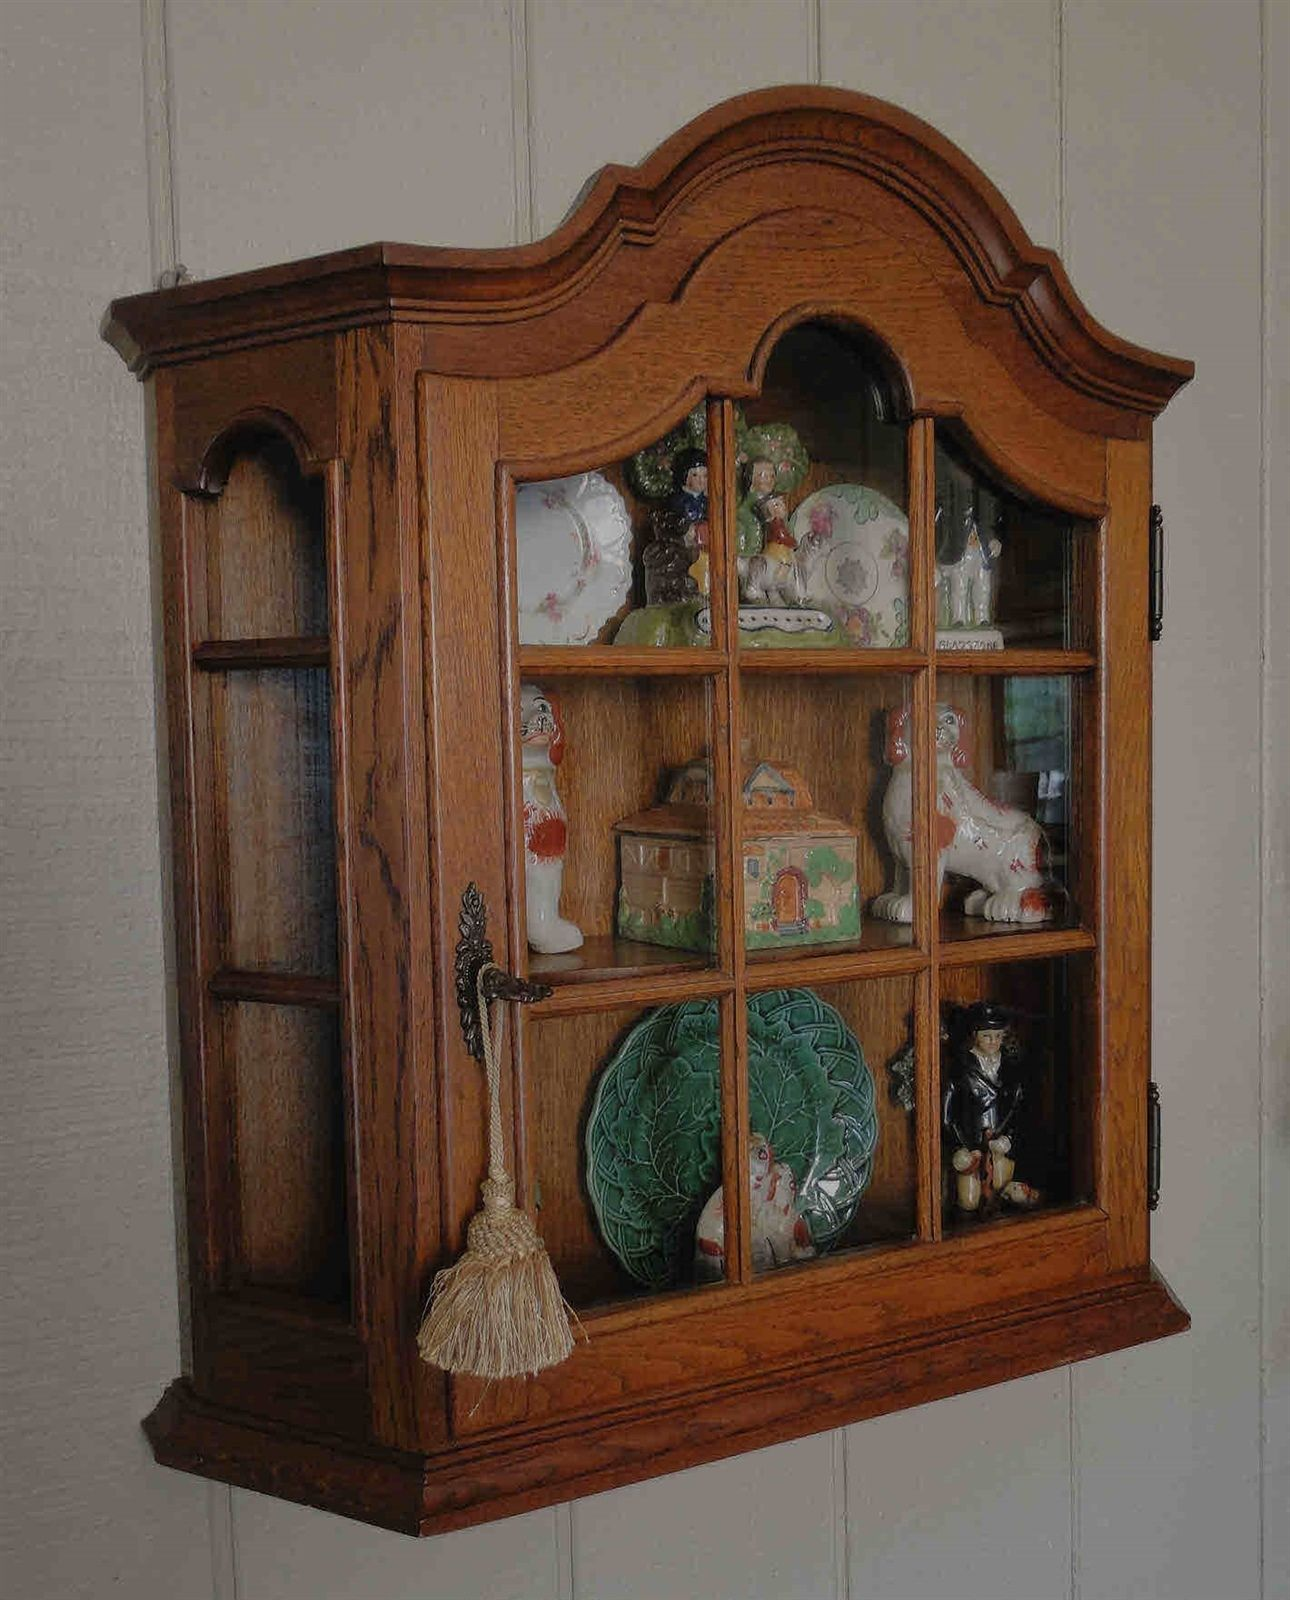 Antique French Oak Dome Top Wall Shelf and Curio Cabinet with Lock and Key and Shelves